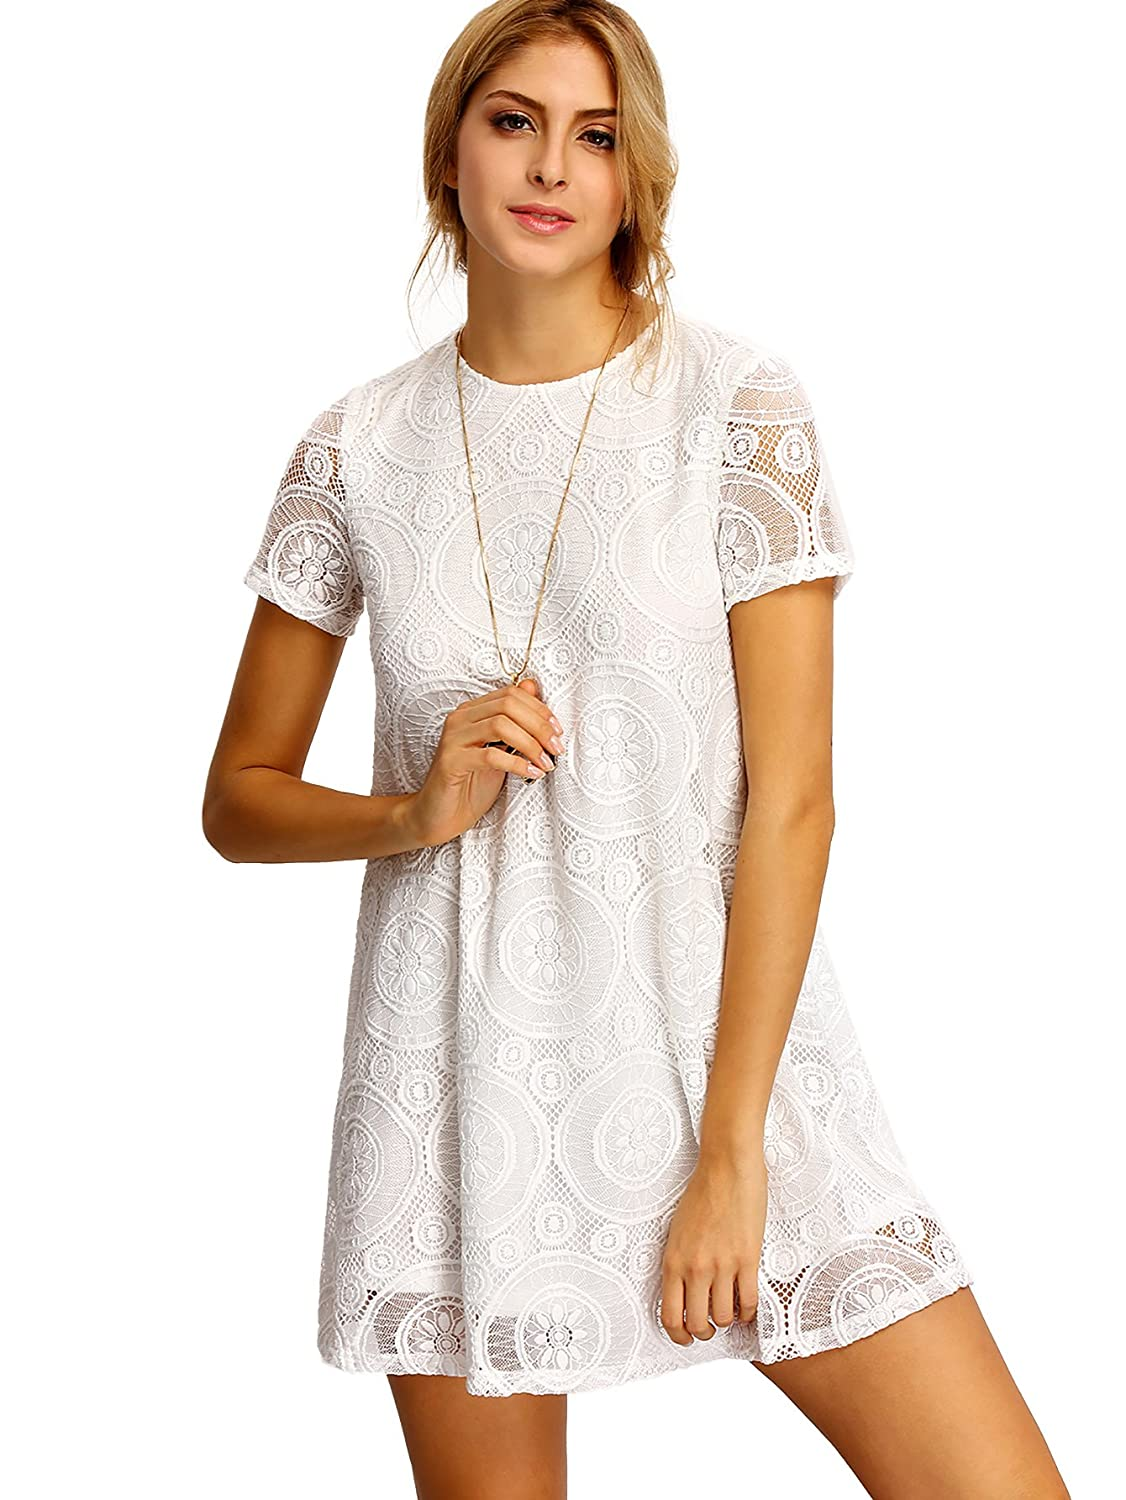 59bc464e62a Romwe Women's Plain Short Sleeve Floral Summer Floral Lace Prom Party Shift  Dress at Amazon Women's Clothing store: